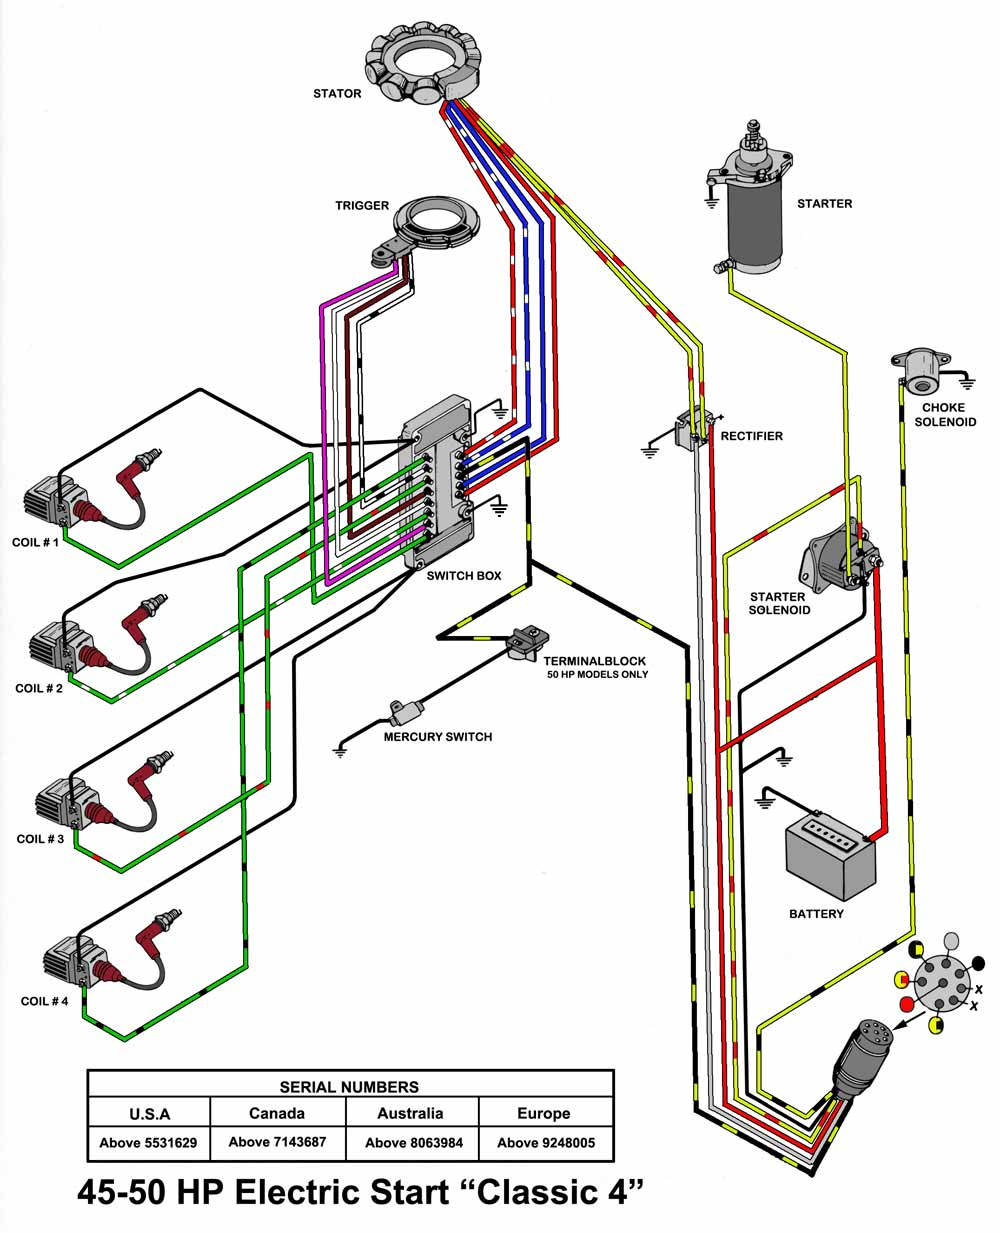 mercury wiring diagram all wiring diagram mercruiser solenoid diagram mercury wiring diagram